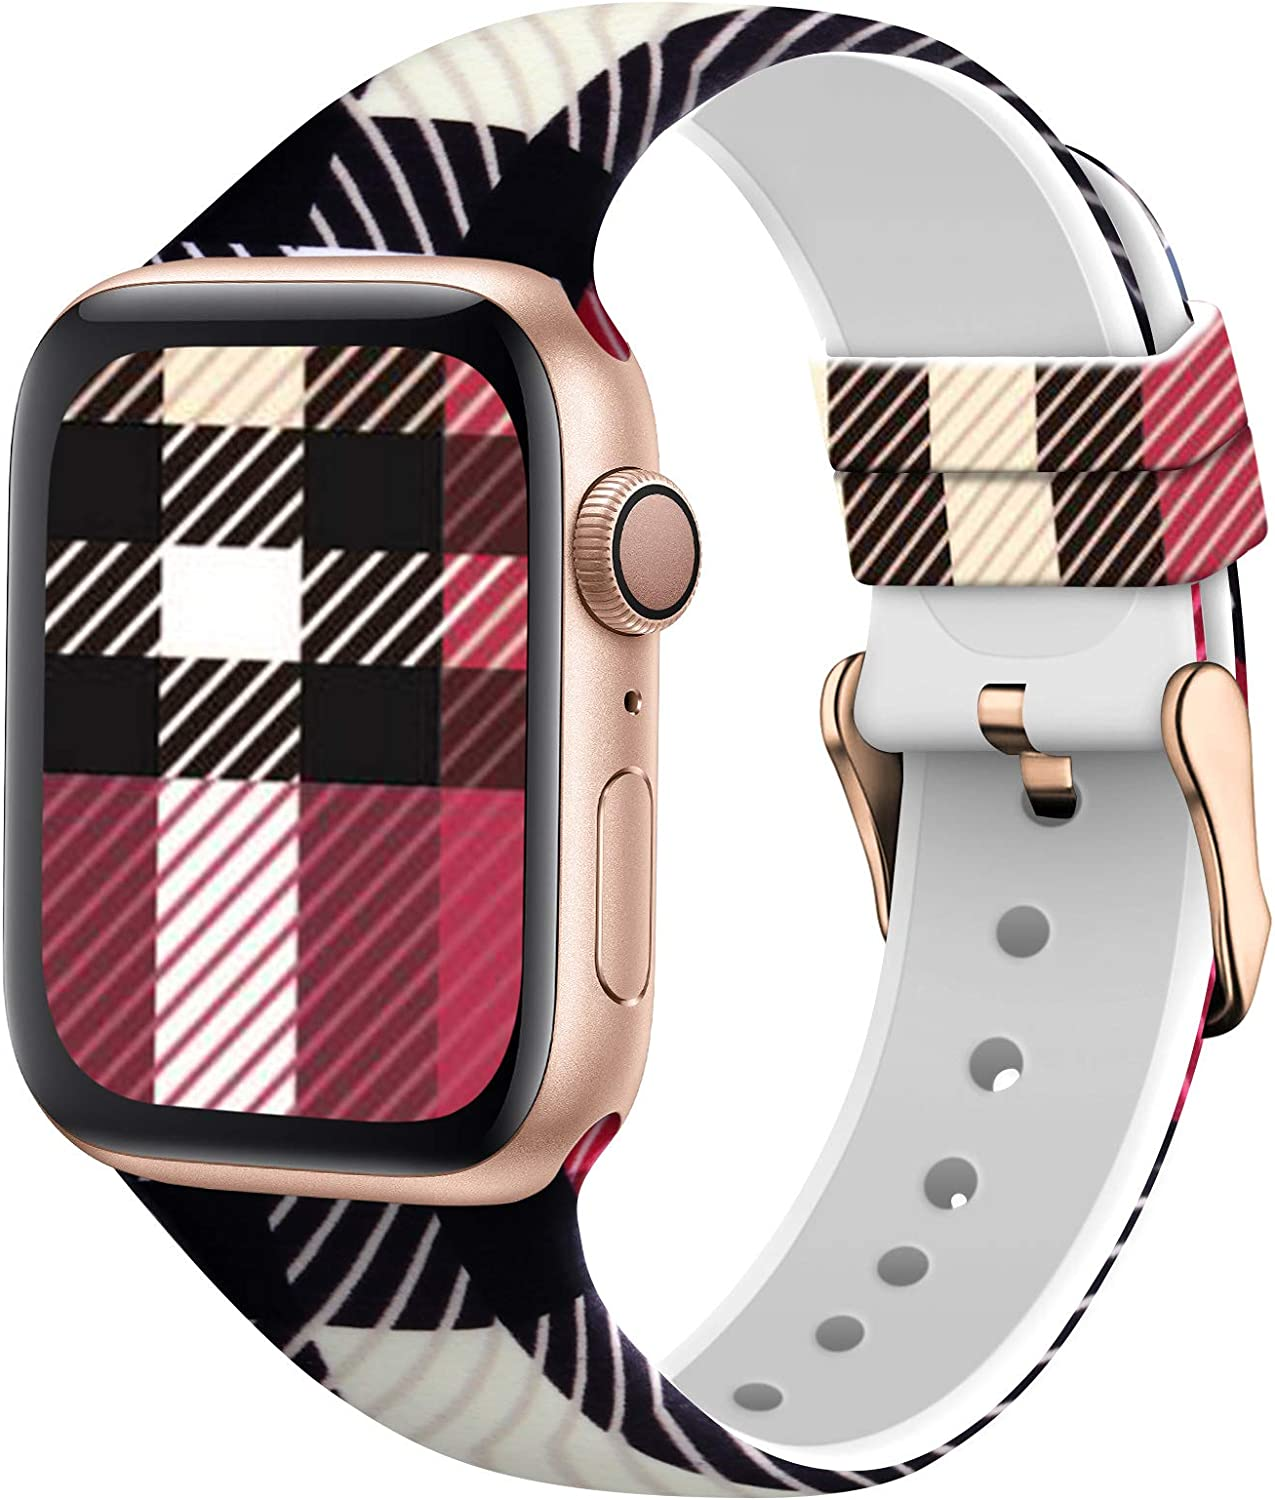 TSAAGAN Silicone Pattern Printed Band Compatible for Apple Watch Band 38mm 42mm 40mm 44mm, Floral Soft Sport Replacement Strap Wristband for iWatch Series 6/5/4/3/2/1 (Lattice, 38mm/40mm)